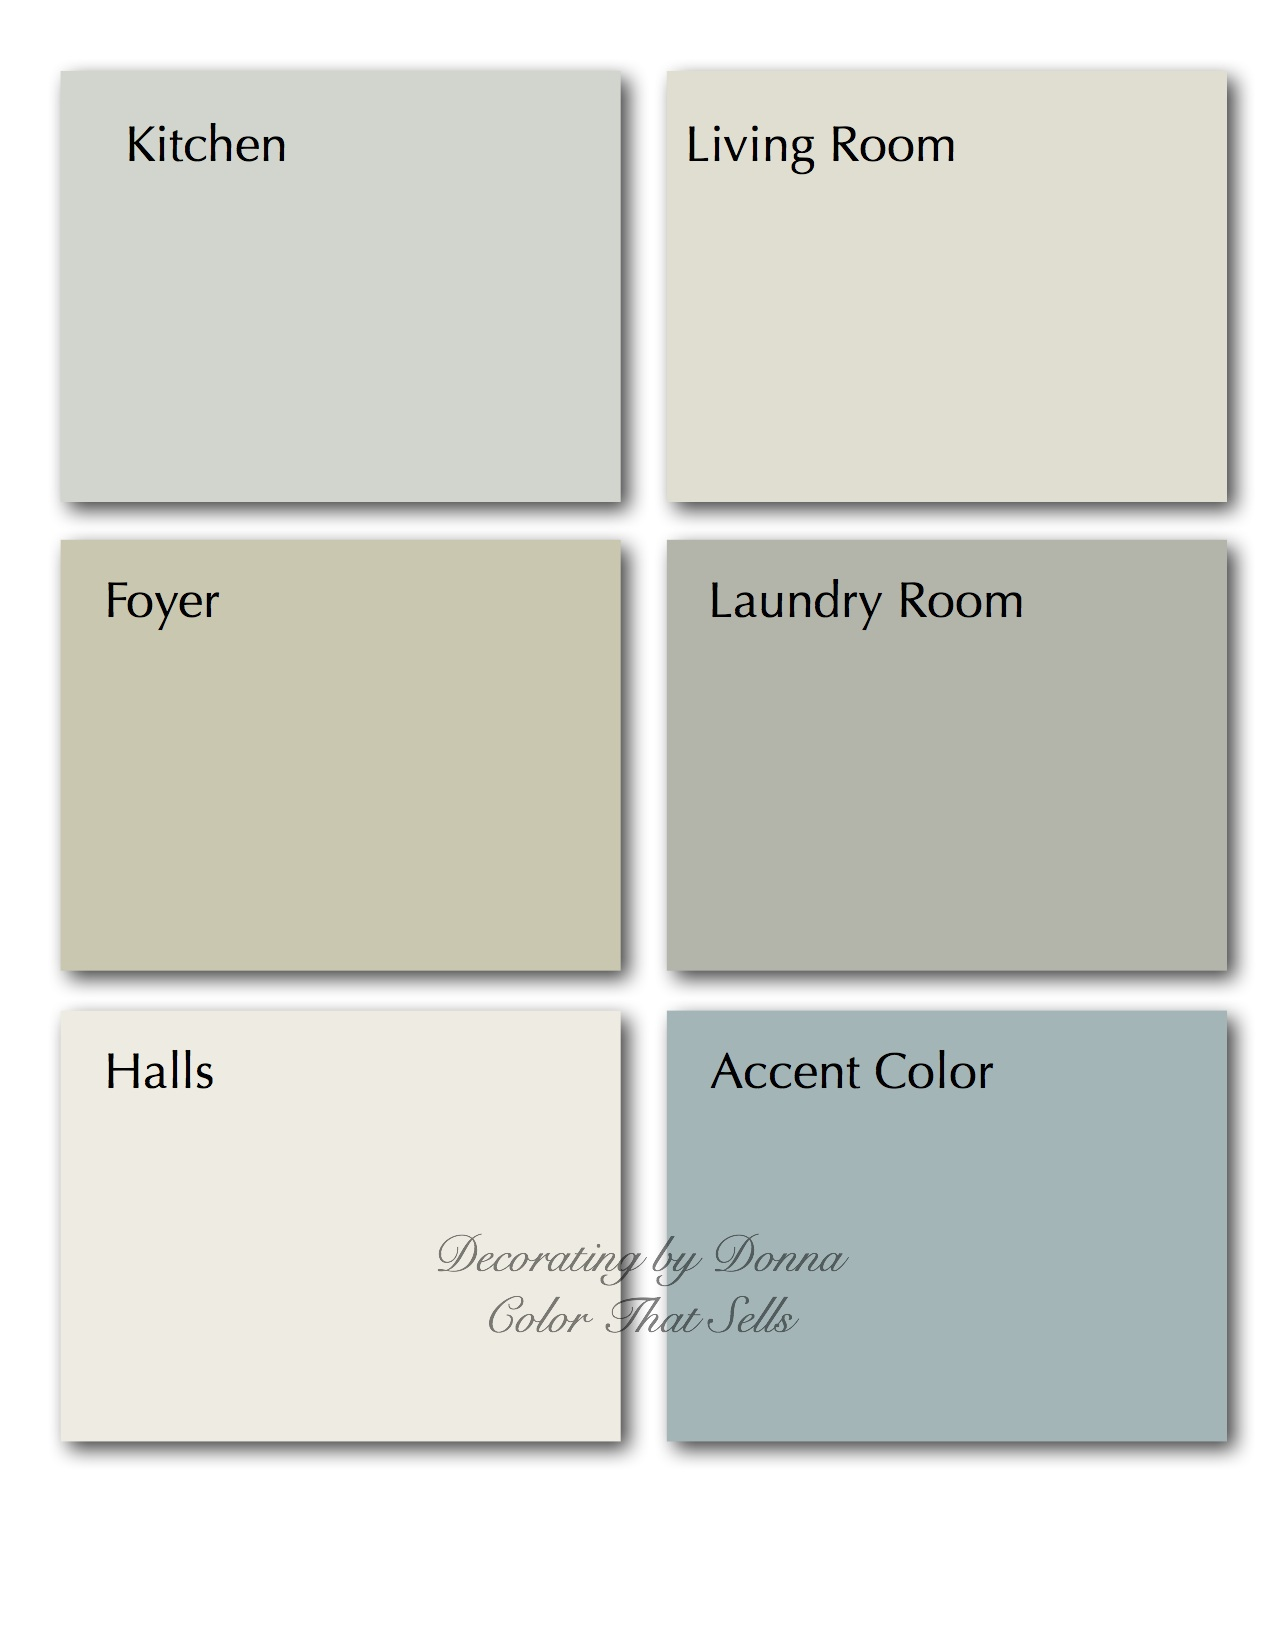 4 Reasons Coastal Colors Are Perfect For Your Home Decorating By Donna Color Expert